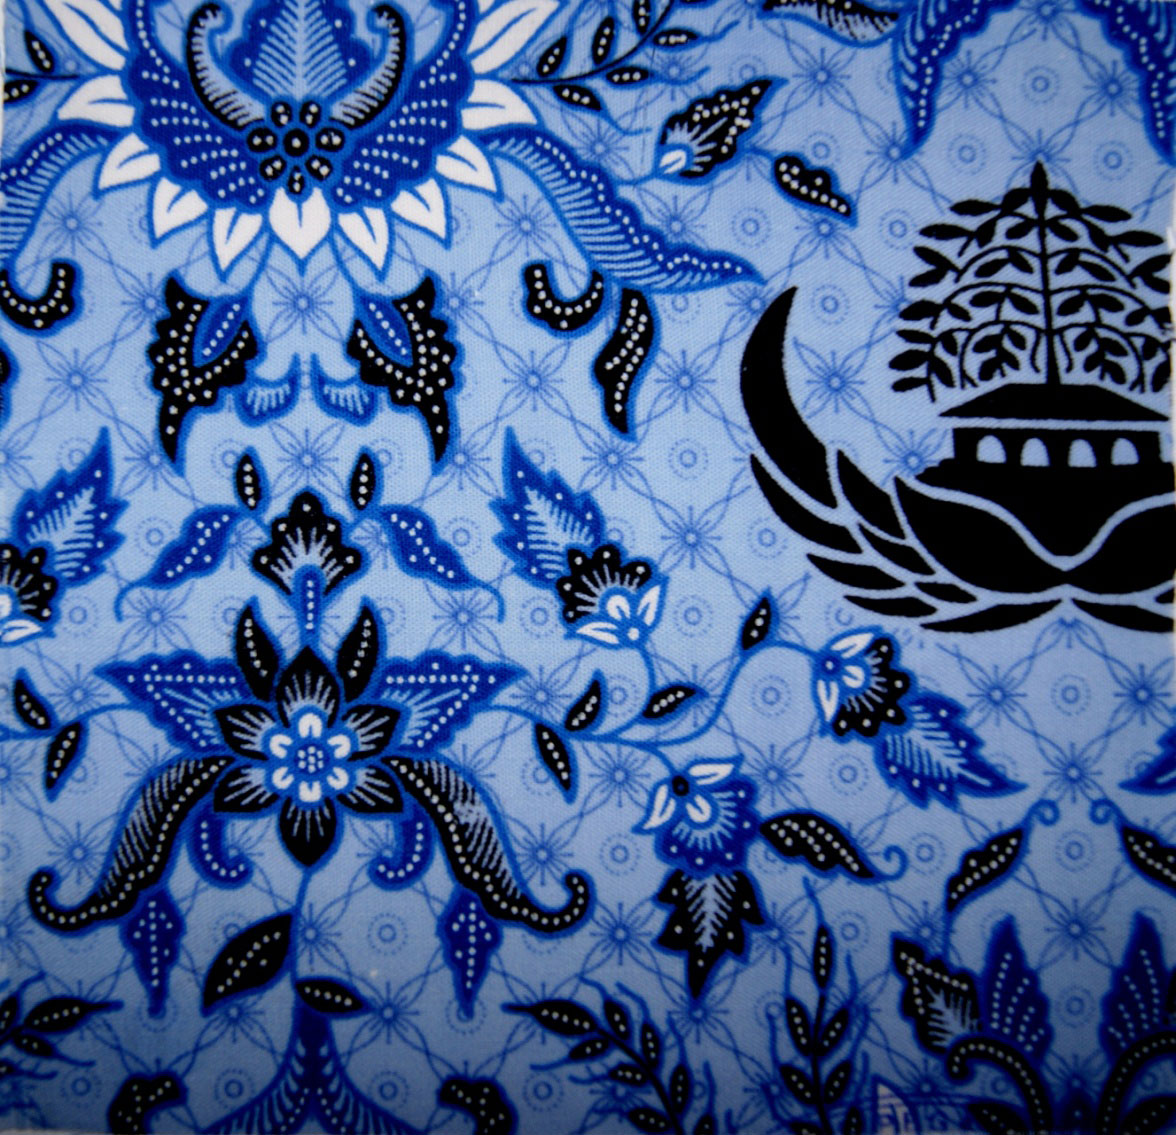 Download image Korpri Seragam Batik 2012 Baru PC, Android, iPhone and ...